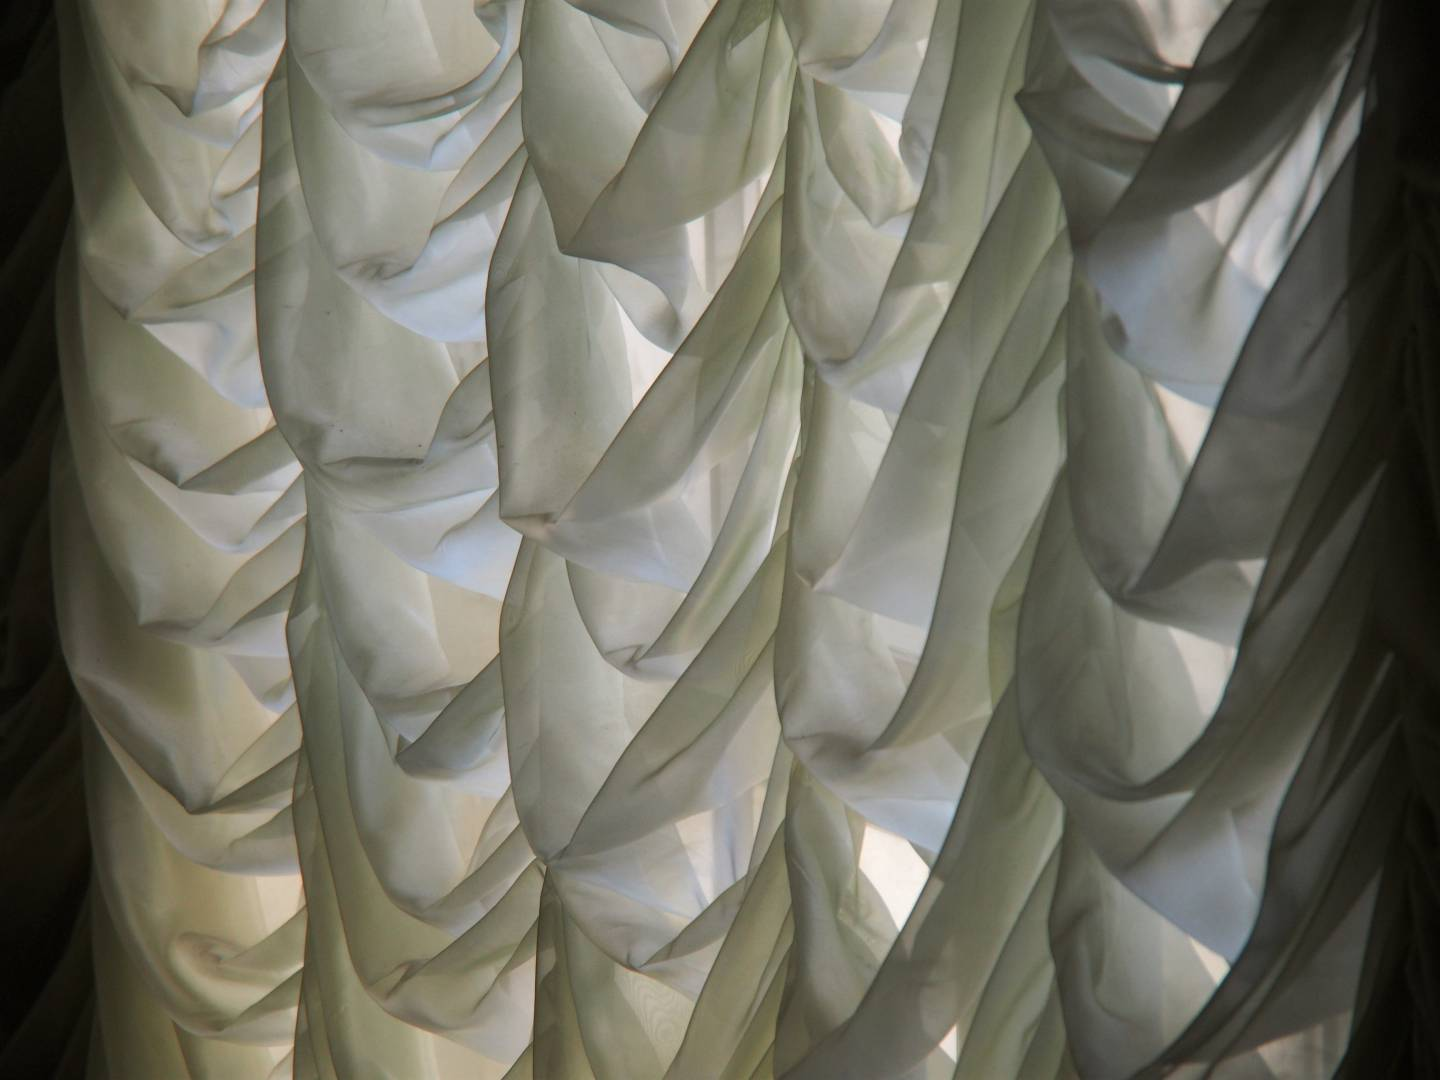 Scrim curtains in the morning light, at Arbob Palace, Khujand Tajikistan